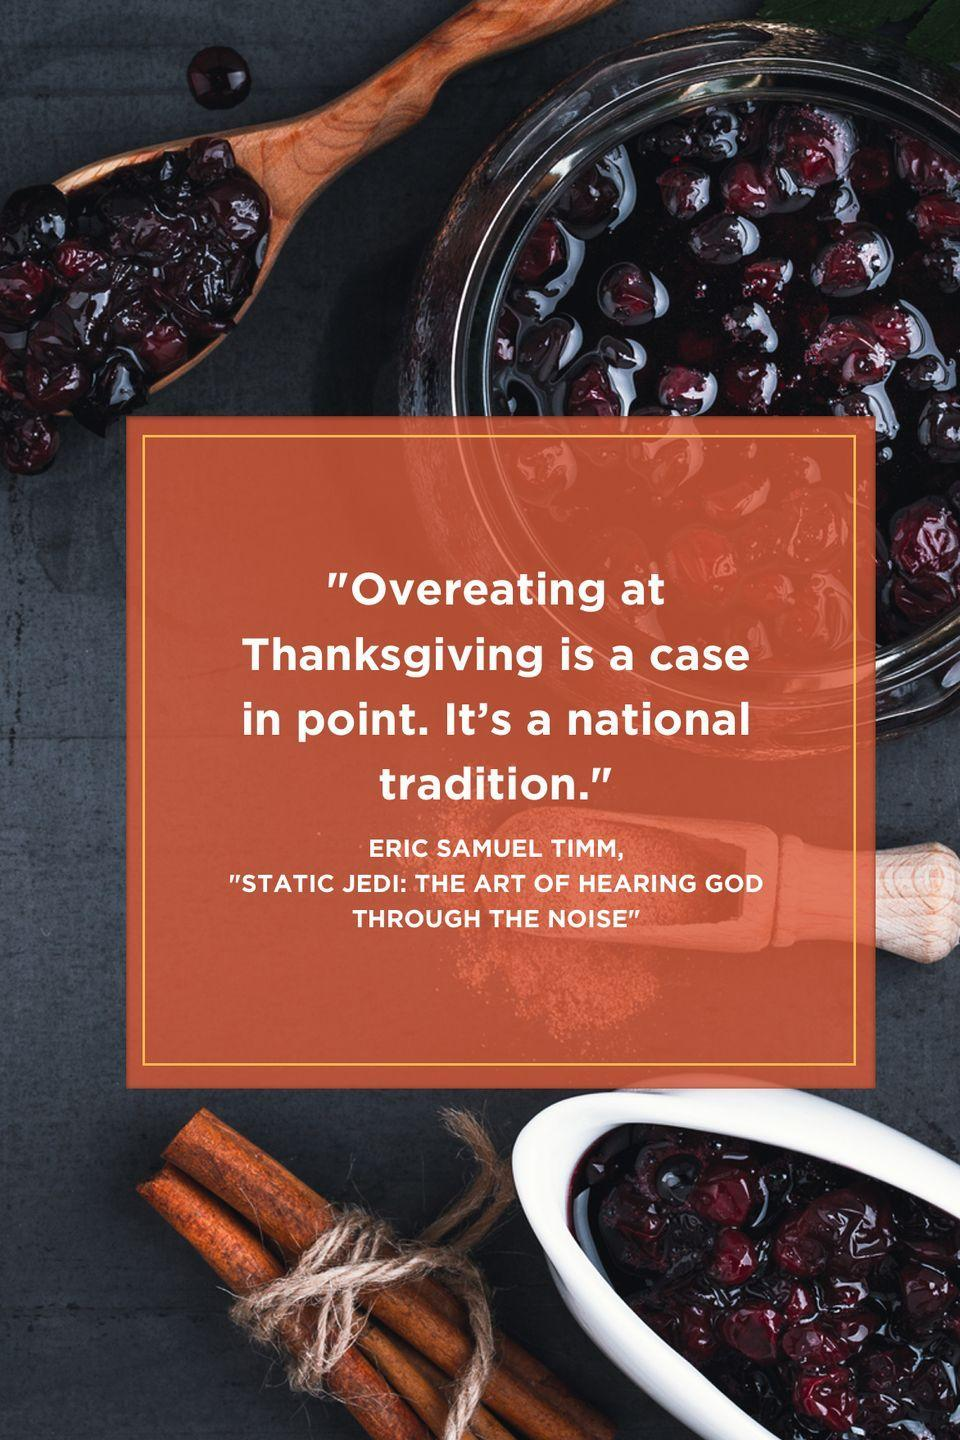 "<p>""Overeating at Thanksgiving is a case in point. It's a national tradition."" </p>"